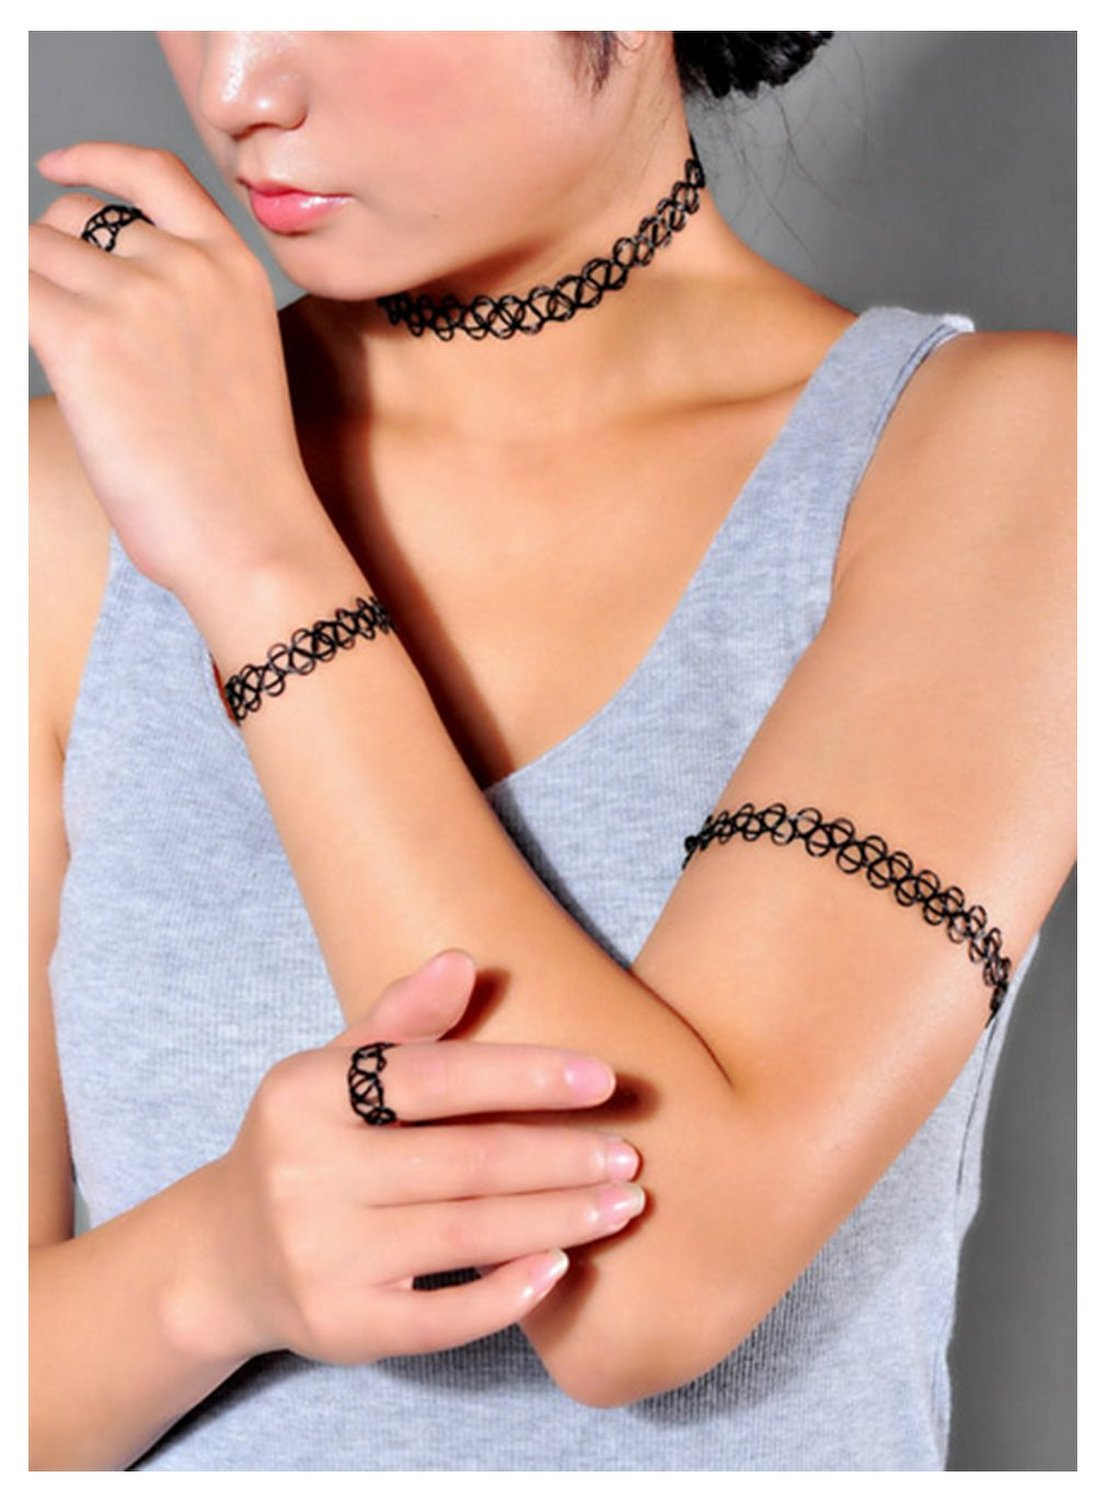 Amazon.com: Complete Set Choker, Bracelet and Ring Vintage Stretch Retro Henna Elastic Tattoo (Black): Clothing